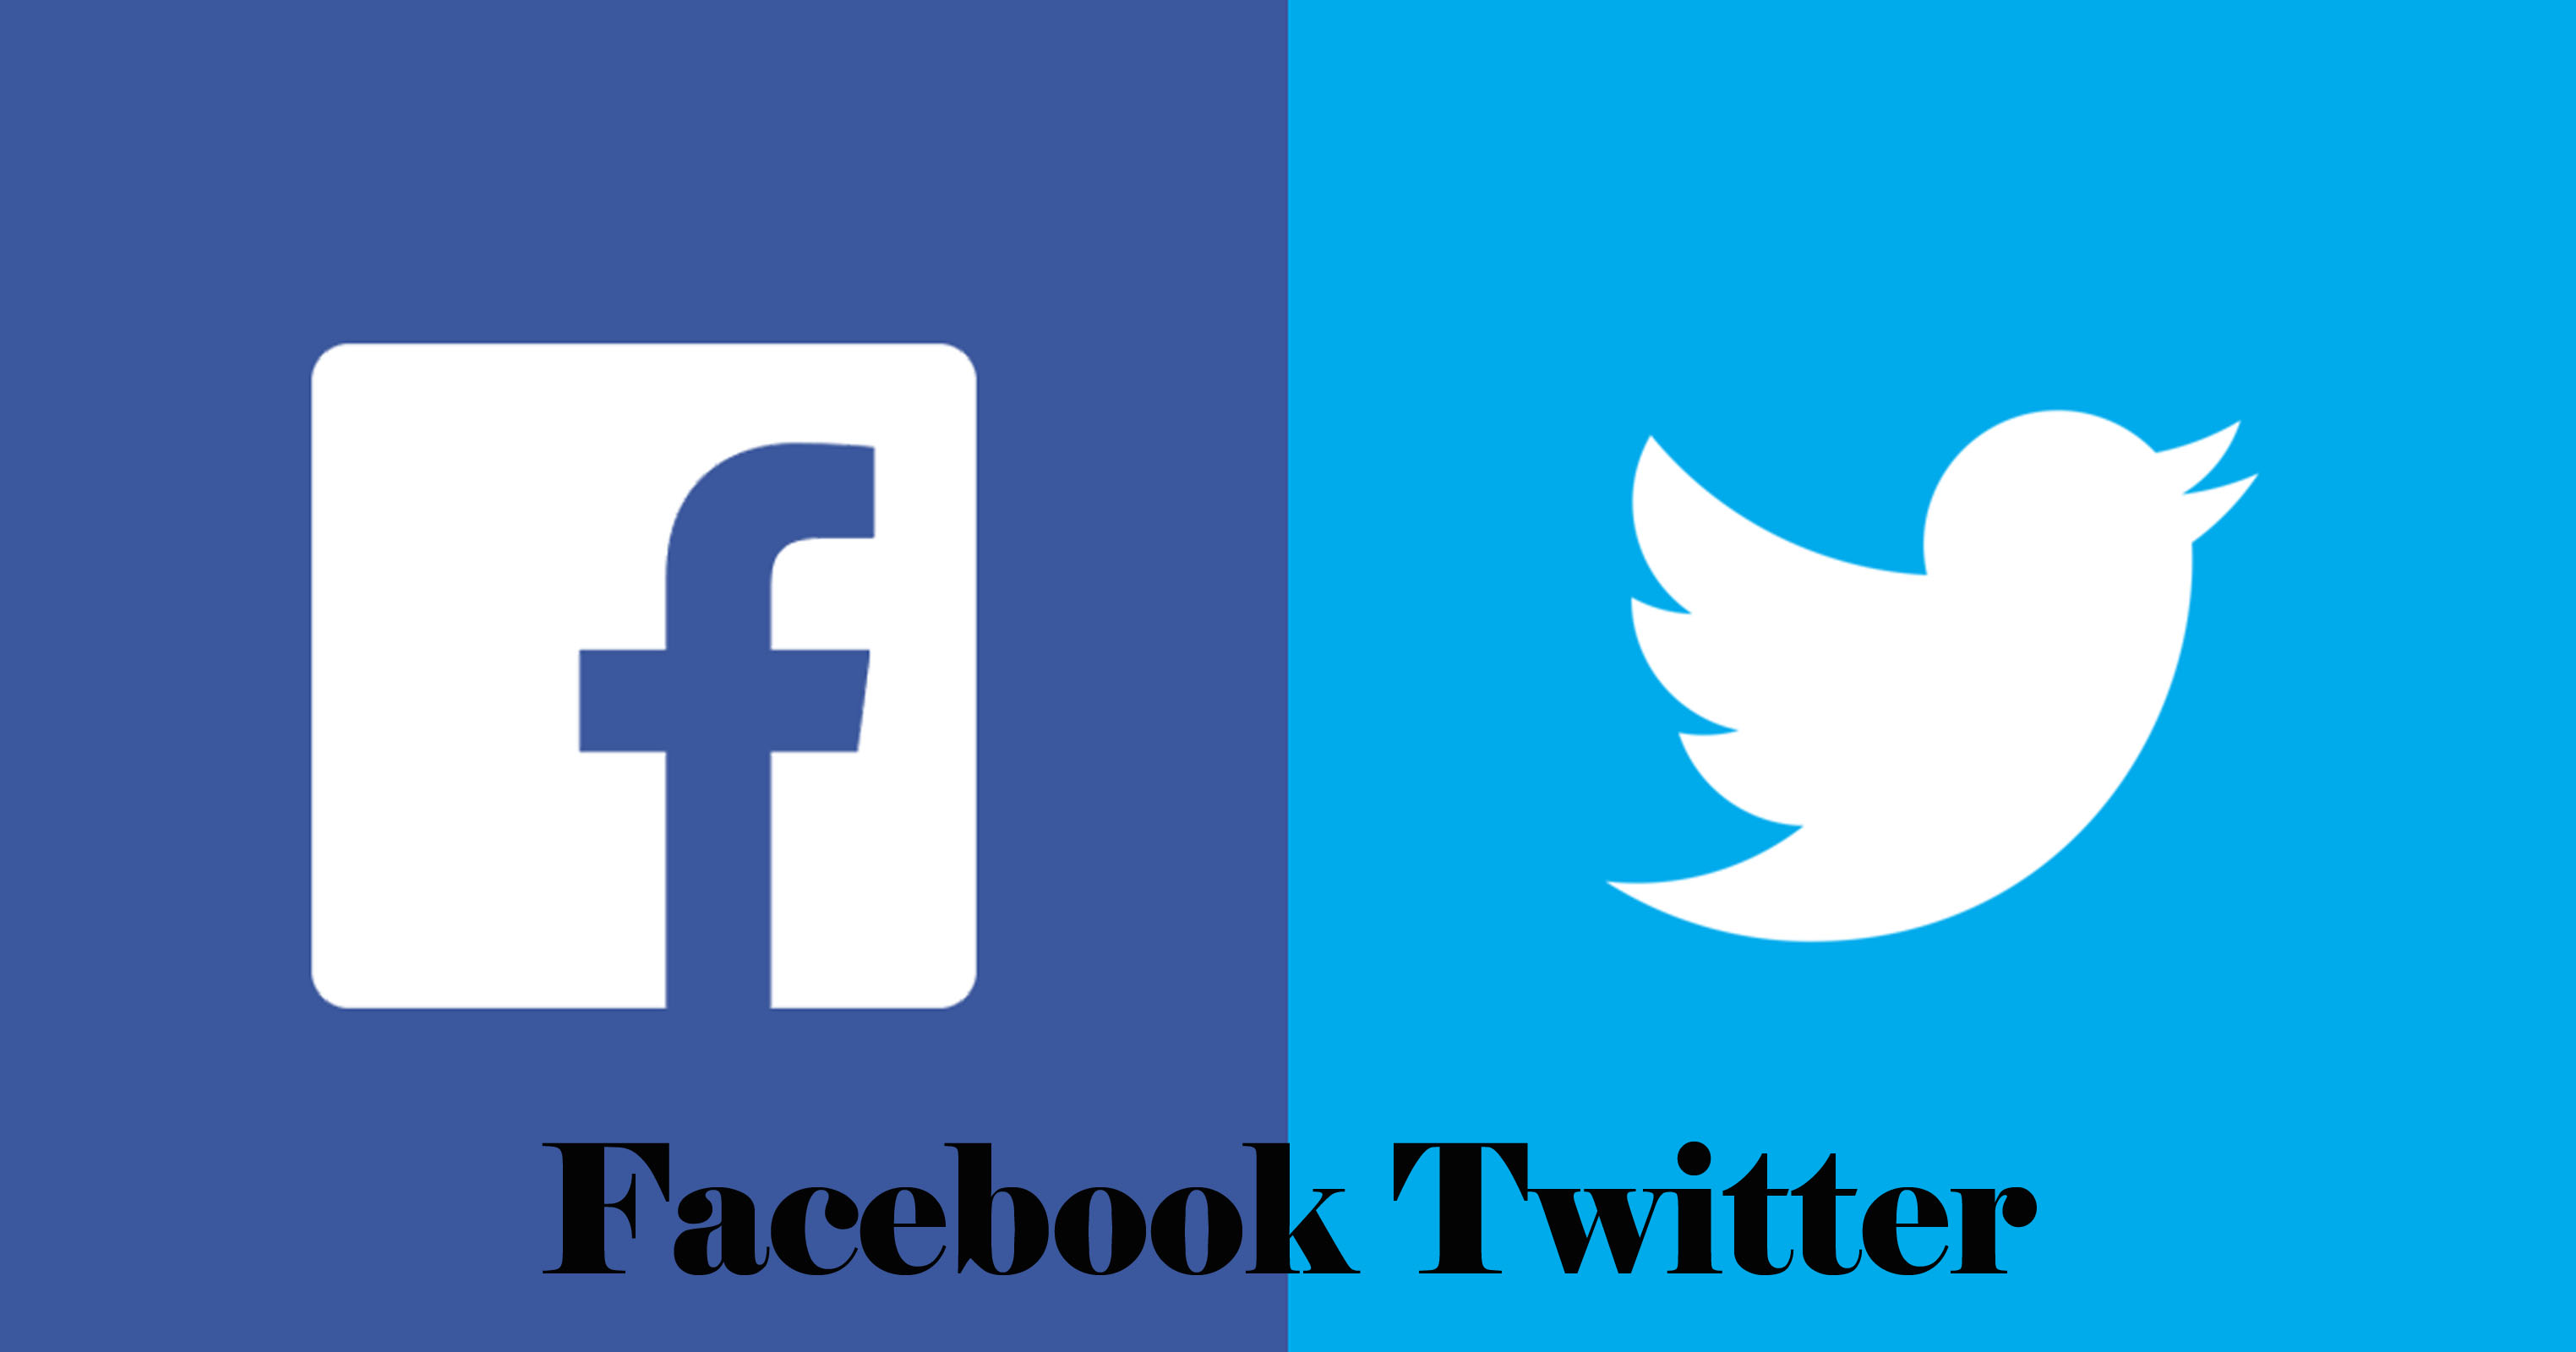 Facebook Twitter - How to Link Both Platforms